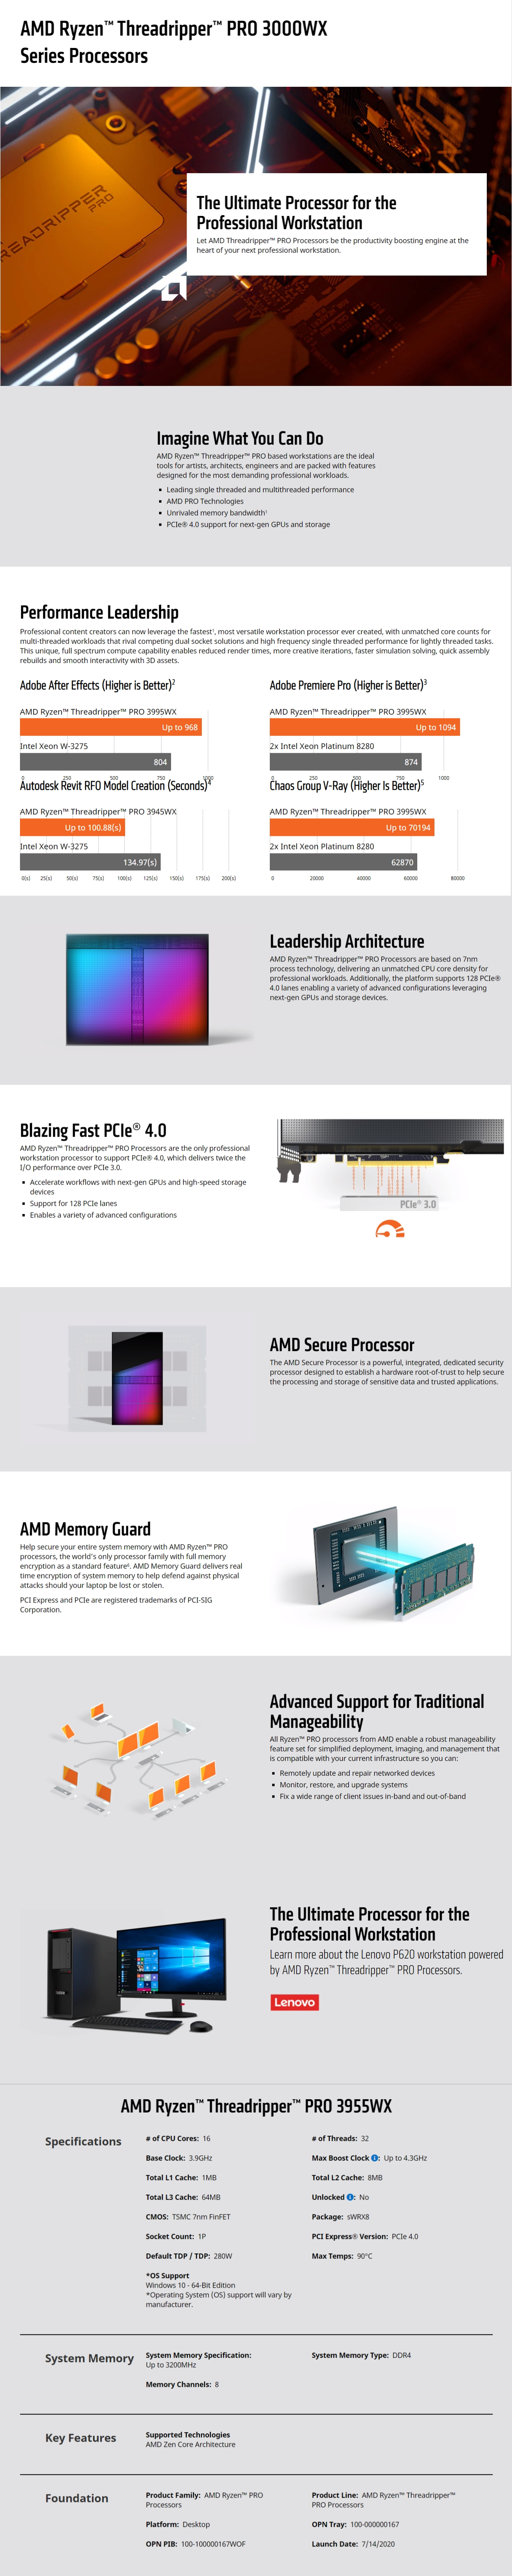 A large marketing image providing additional information about the product AMD Ryzen Threadripper PRO 3955WX 16 Core 32 Thread Up To 4.3Ghz 128MB sWRX8 Processor - No HSF Retail Box - Additional alt info not provided